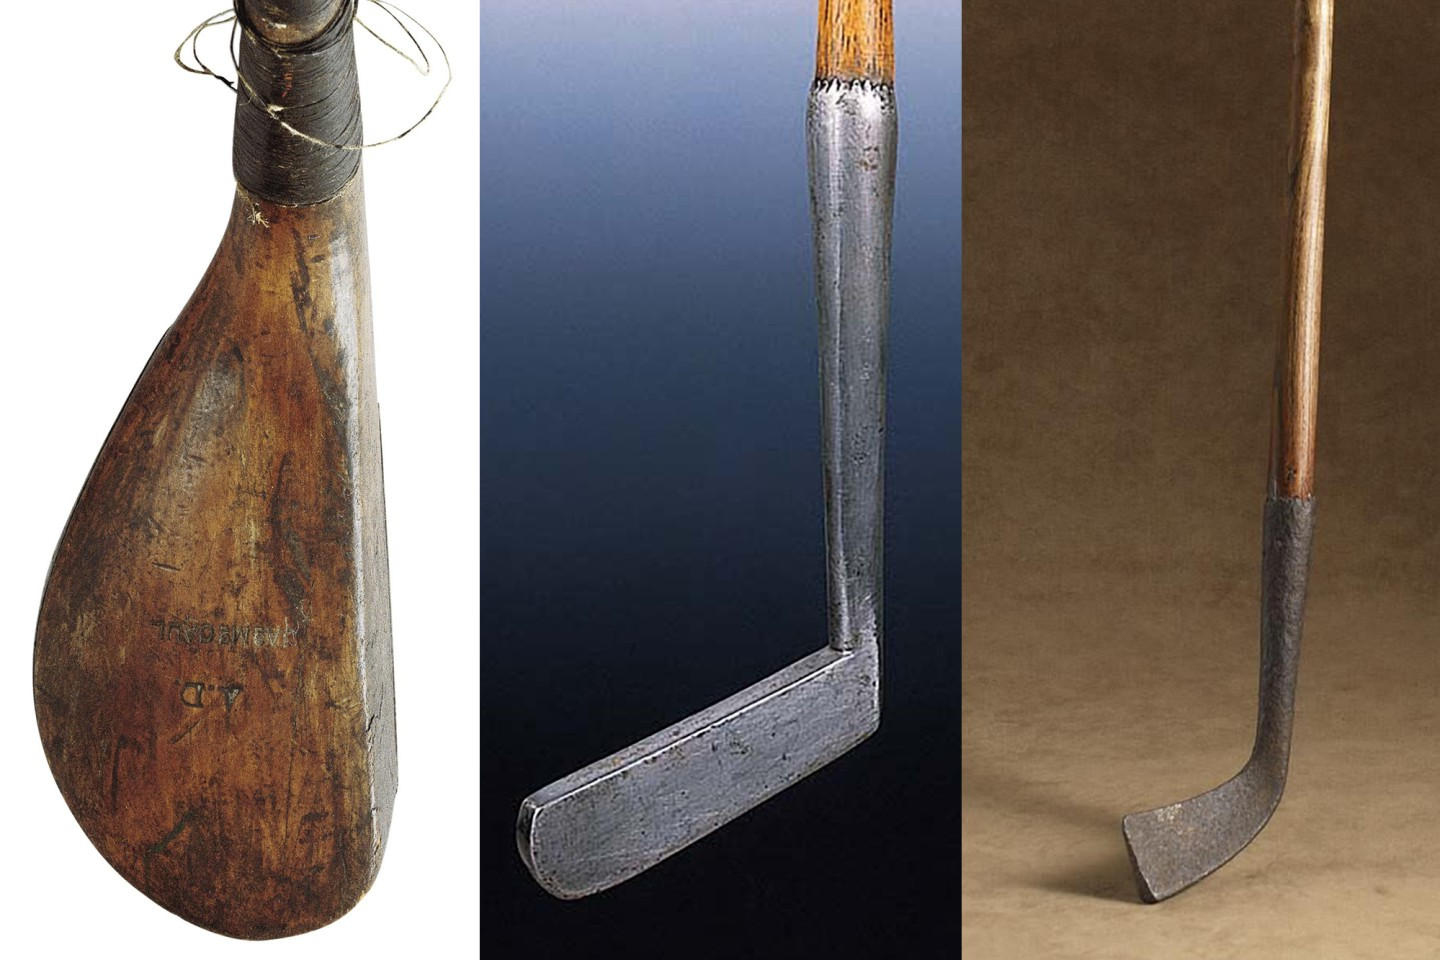 The three most expensive golf clubs sold to this point in time are an 18th century long-nosed putter attributed to Andrew Dickson, 18th century sold by Sotheby's on September 27, 2007 for $181,000, a late 18th/early 19th Century metal-headed blade-putter with fruitwood shaft sold by Christie's on July 7, 1998 for £106,000 (US$173,617), and 17th century square toe light iron sold by Sotheby's on September 27, 2007 for $151,000.